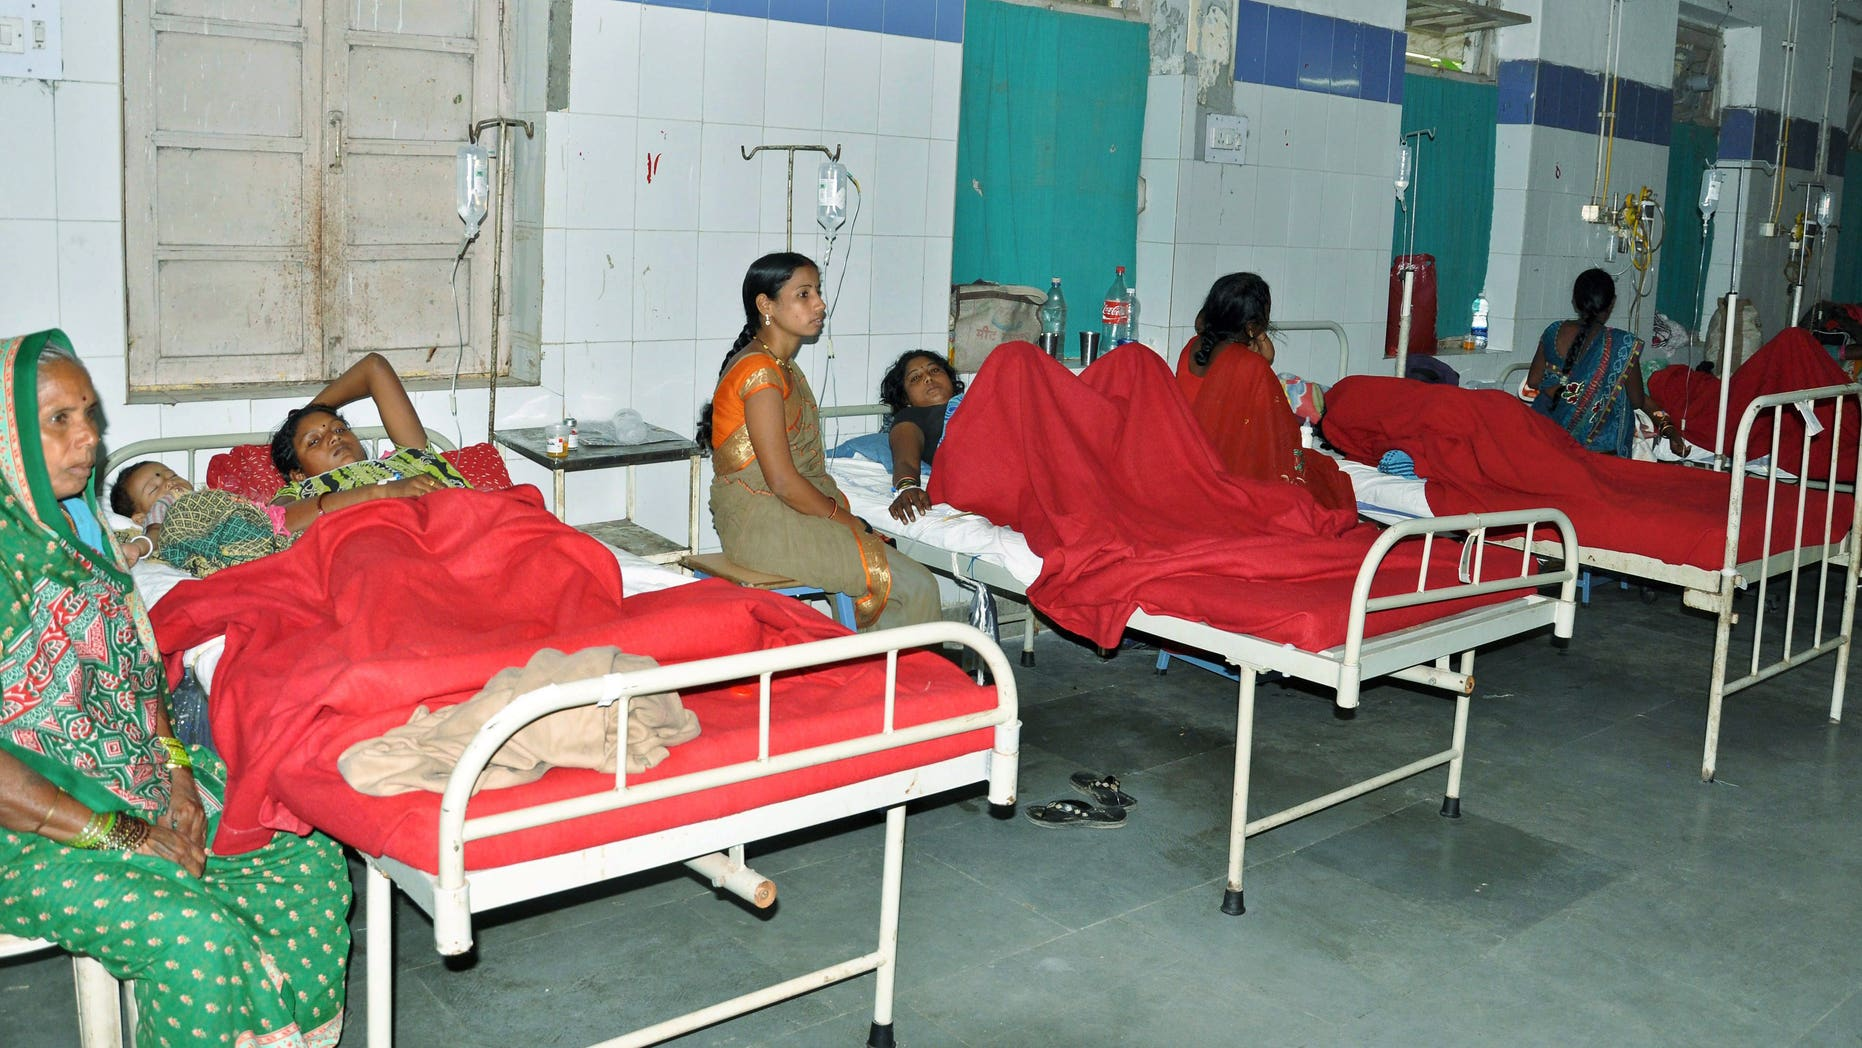 Indian women who underwent sterilization surgeries receive treatment at the CIMS hospital in Bilaspur, in the central Indian state of Chhattisgarh, Tuesday, Nov. 11, 2014. (AP Photo/Press Trust of India)